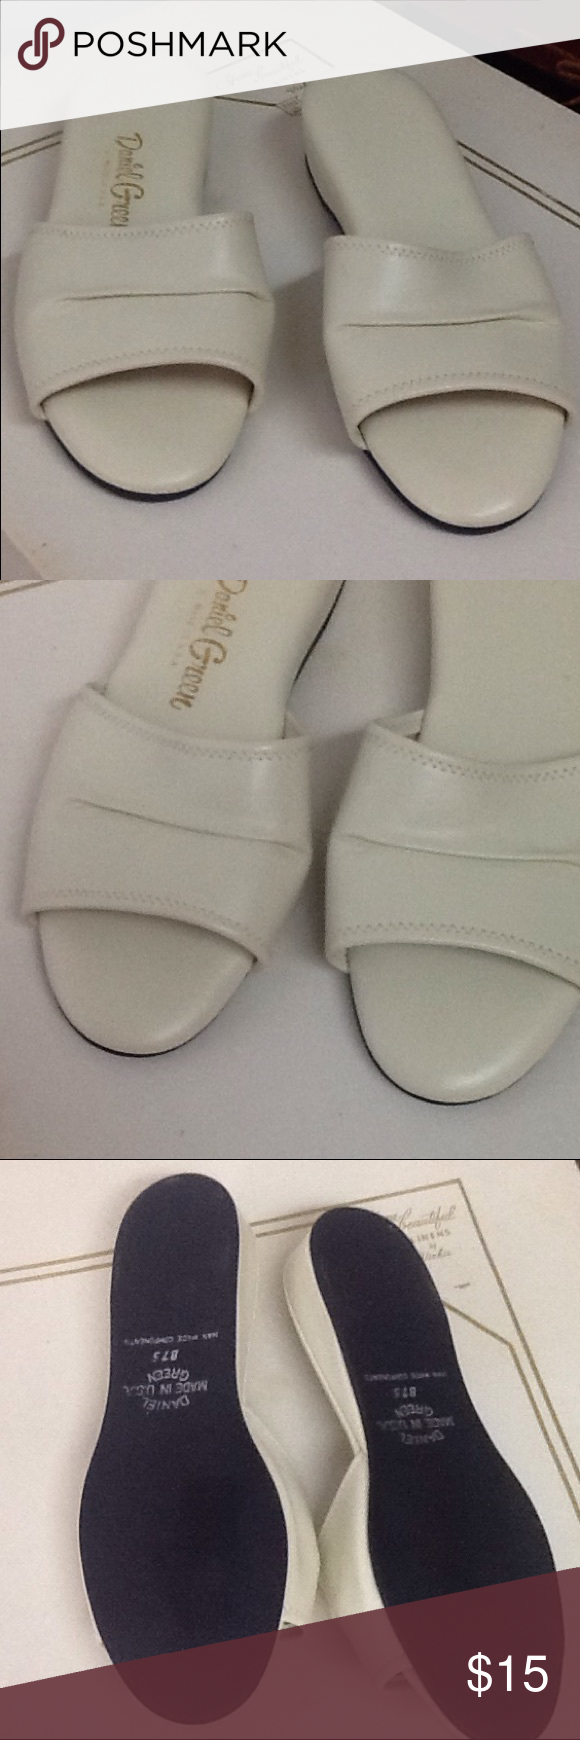 vintage daniel green house shoes | green shoes, flaws and ivory